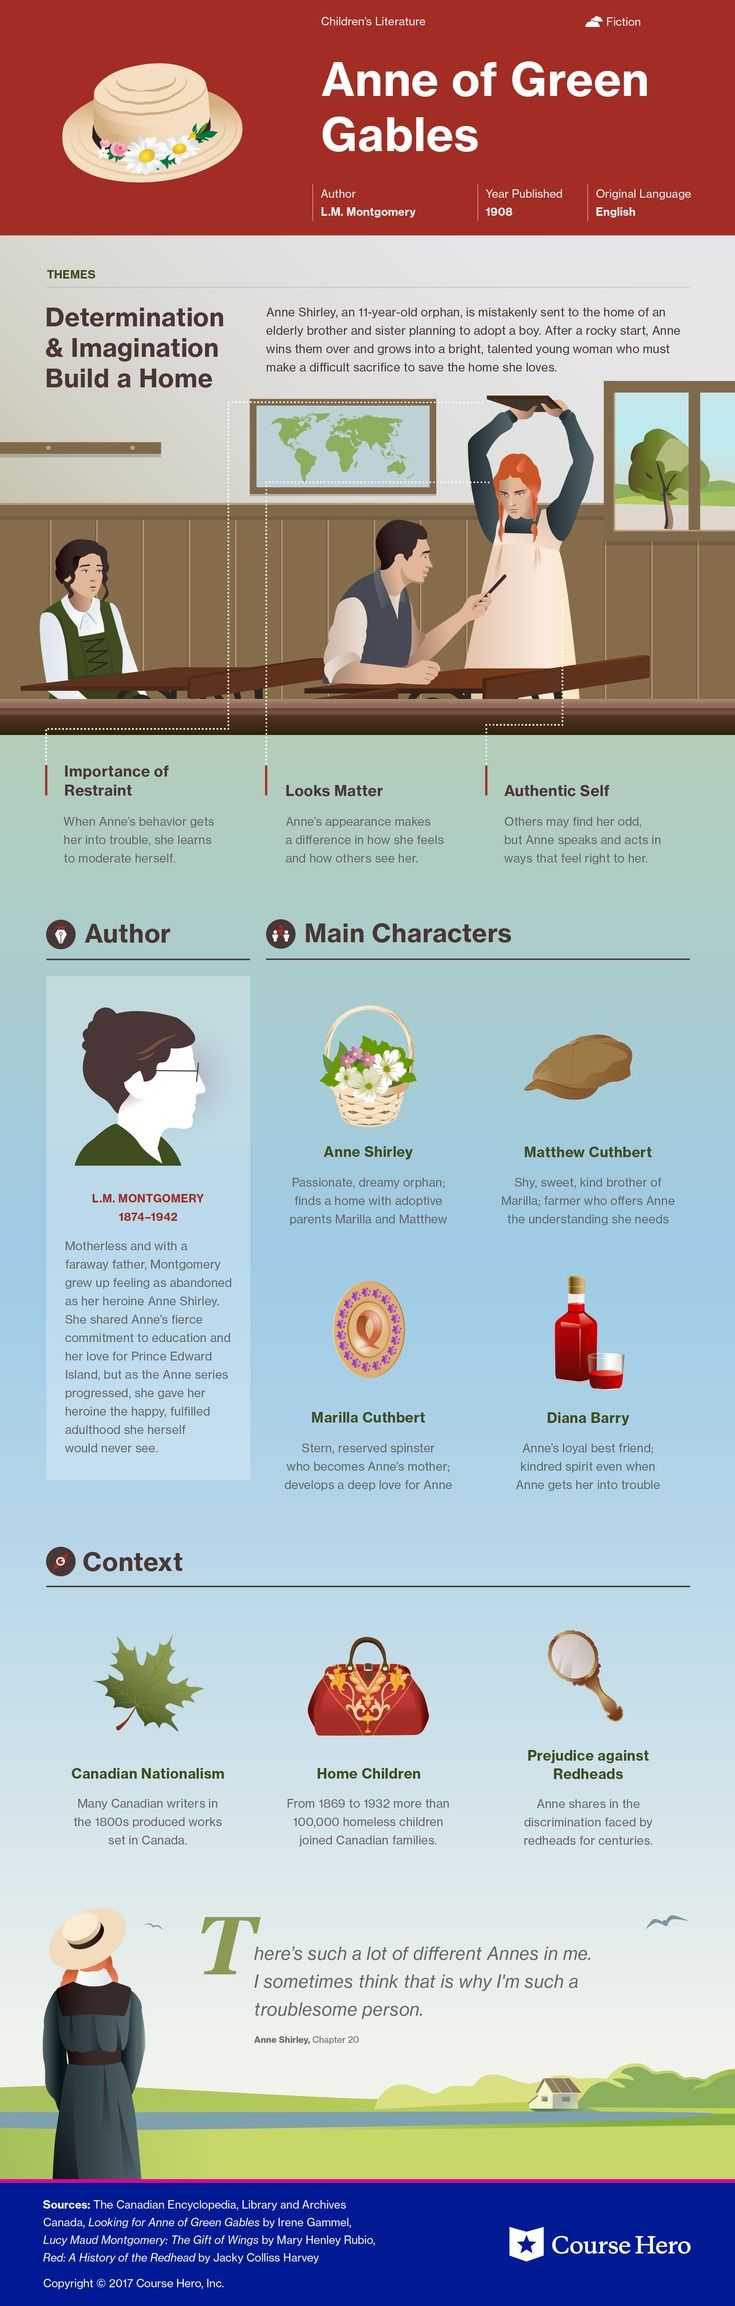 This @CourseHero infographic on Anne of Green Gables is both visually stunning and informative!